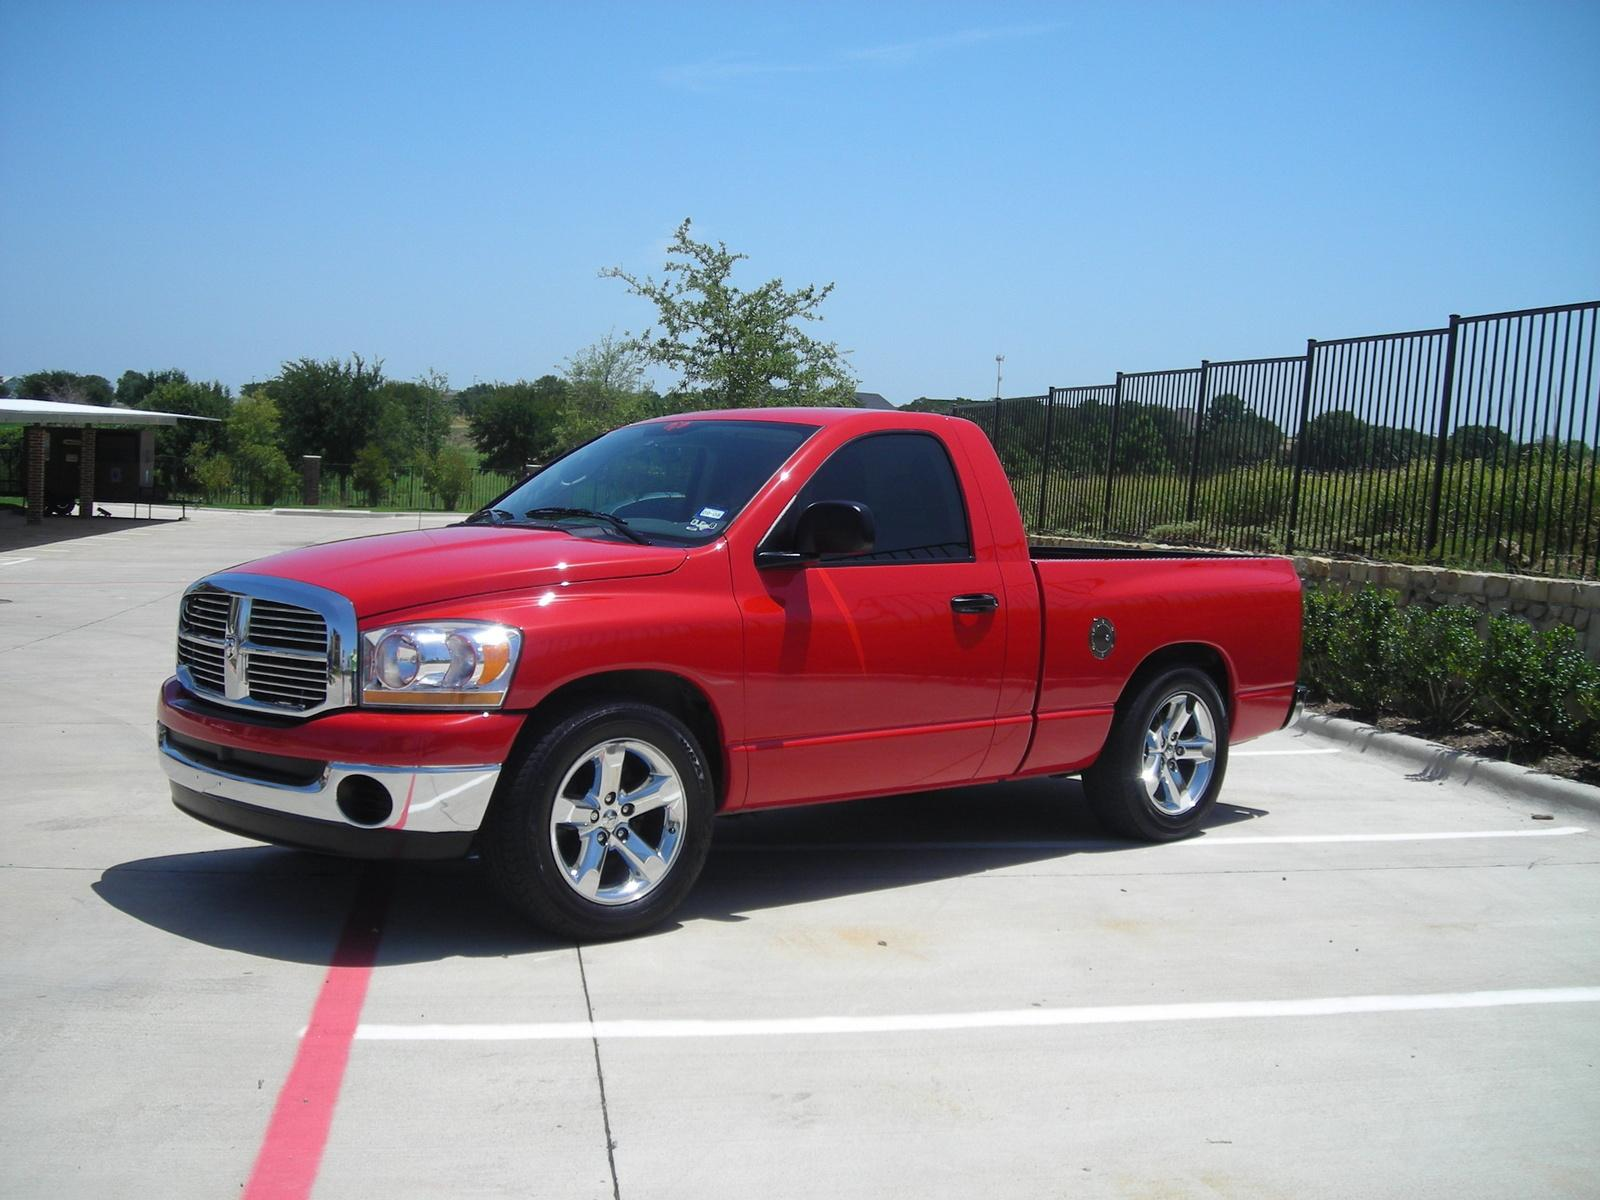 2006 dodge ram pickup 1500 information and photos zombiedrive. Black Bedroom Furniture Sets. Home Design Ideas